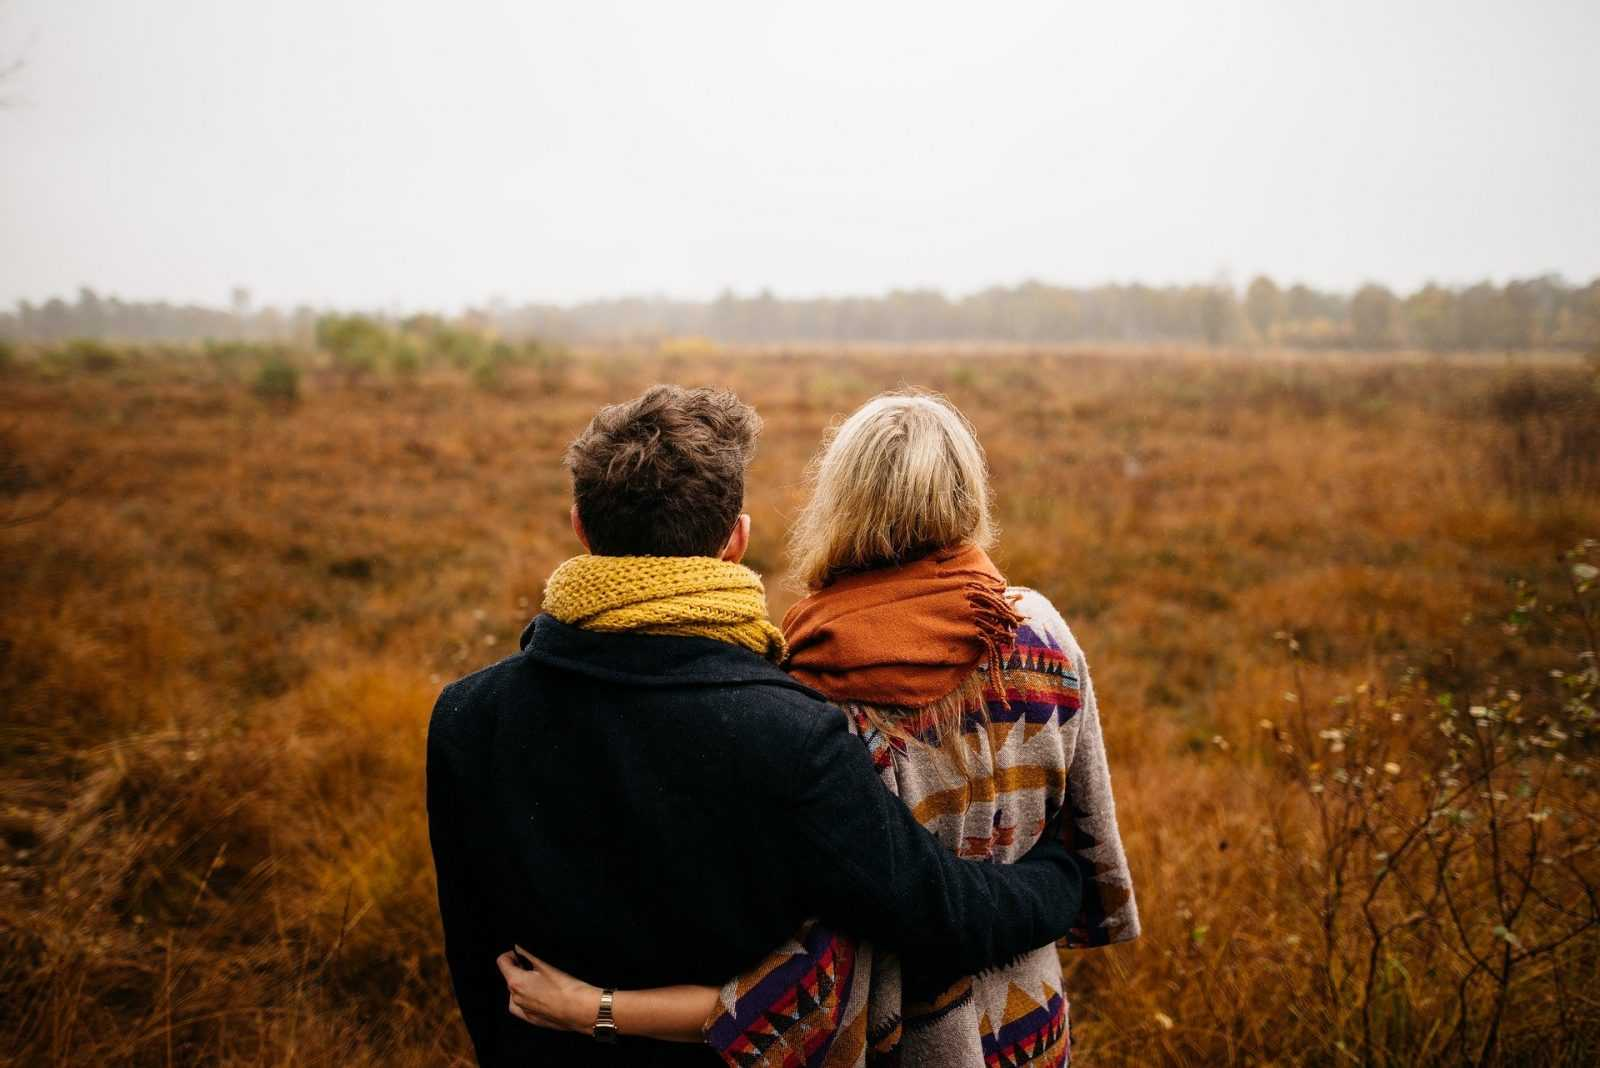 Loving intended couples get connected with surrogates at Love & Kindness Agency